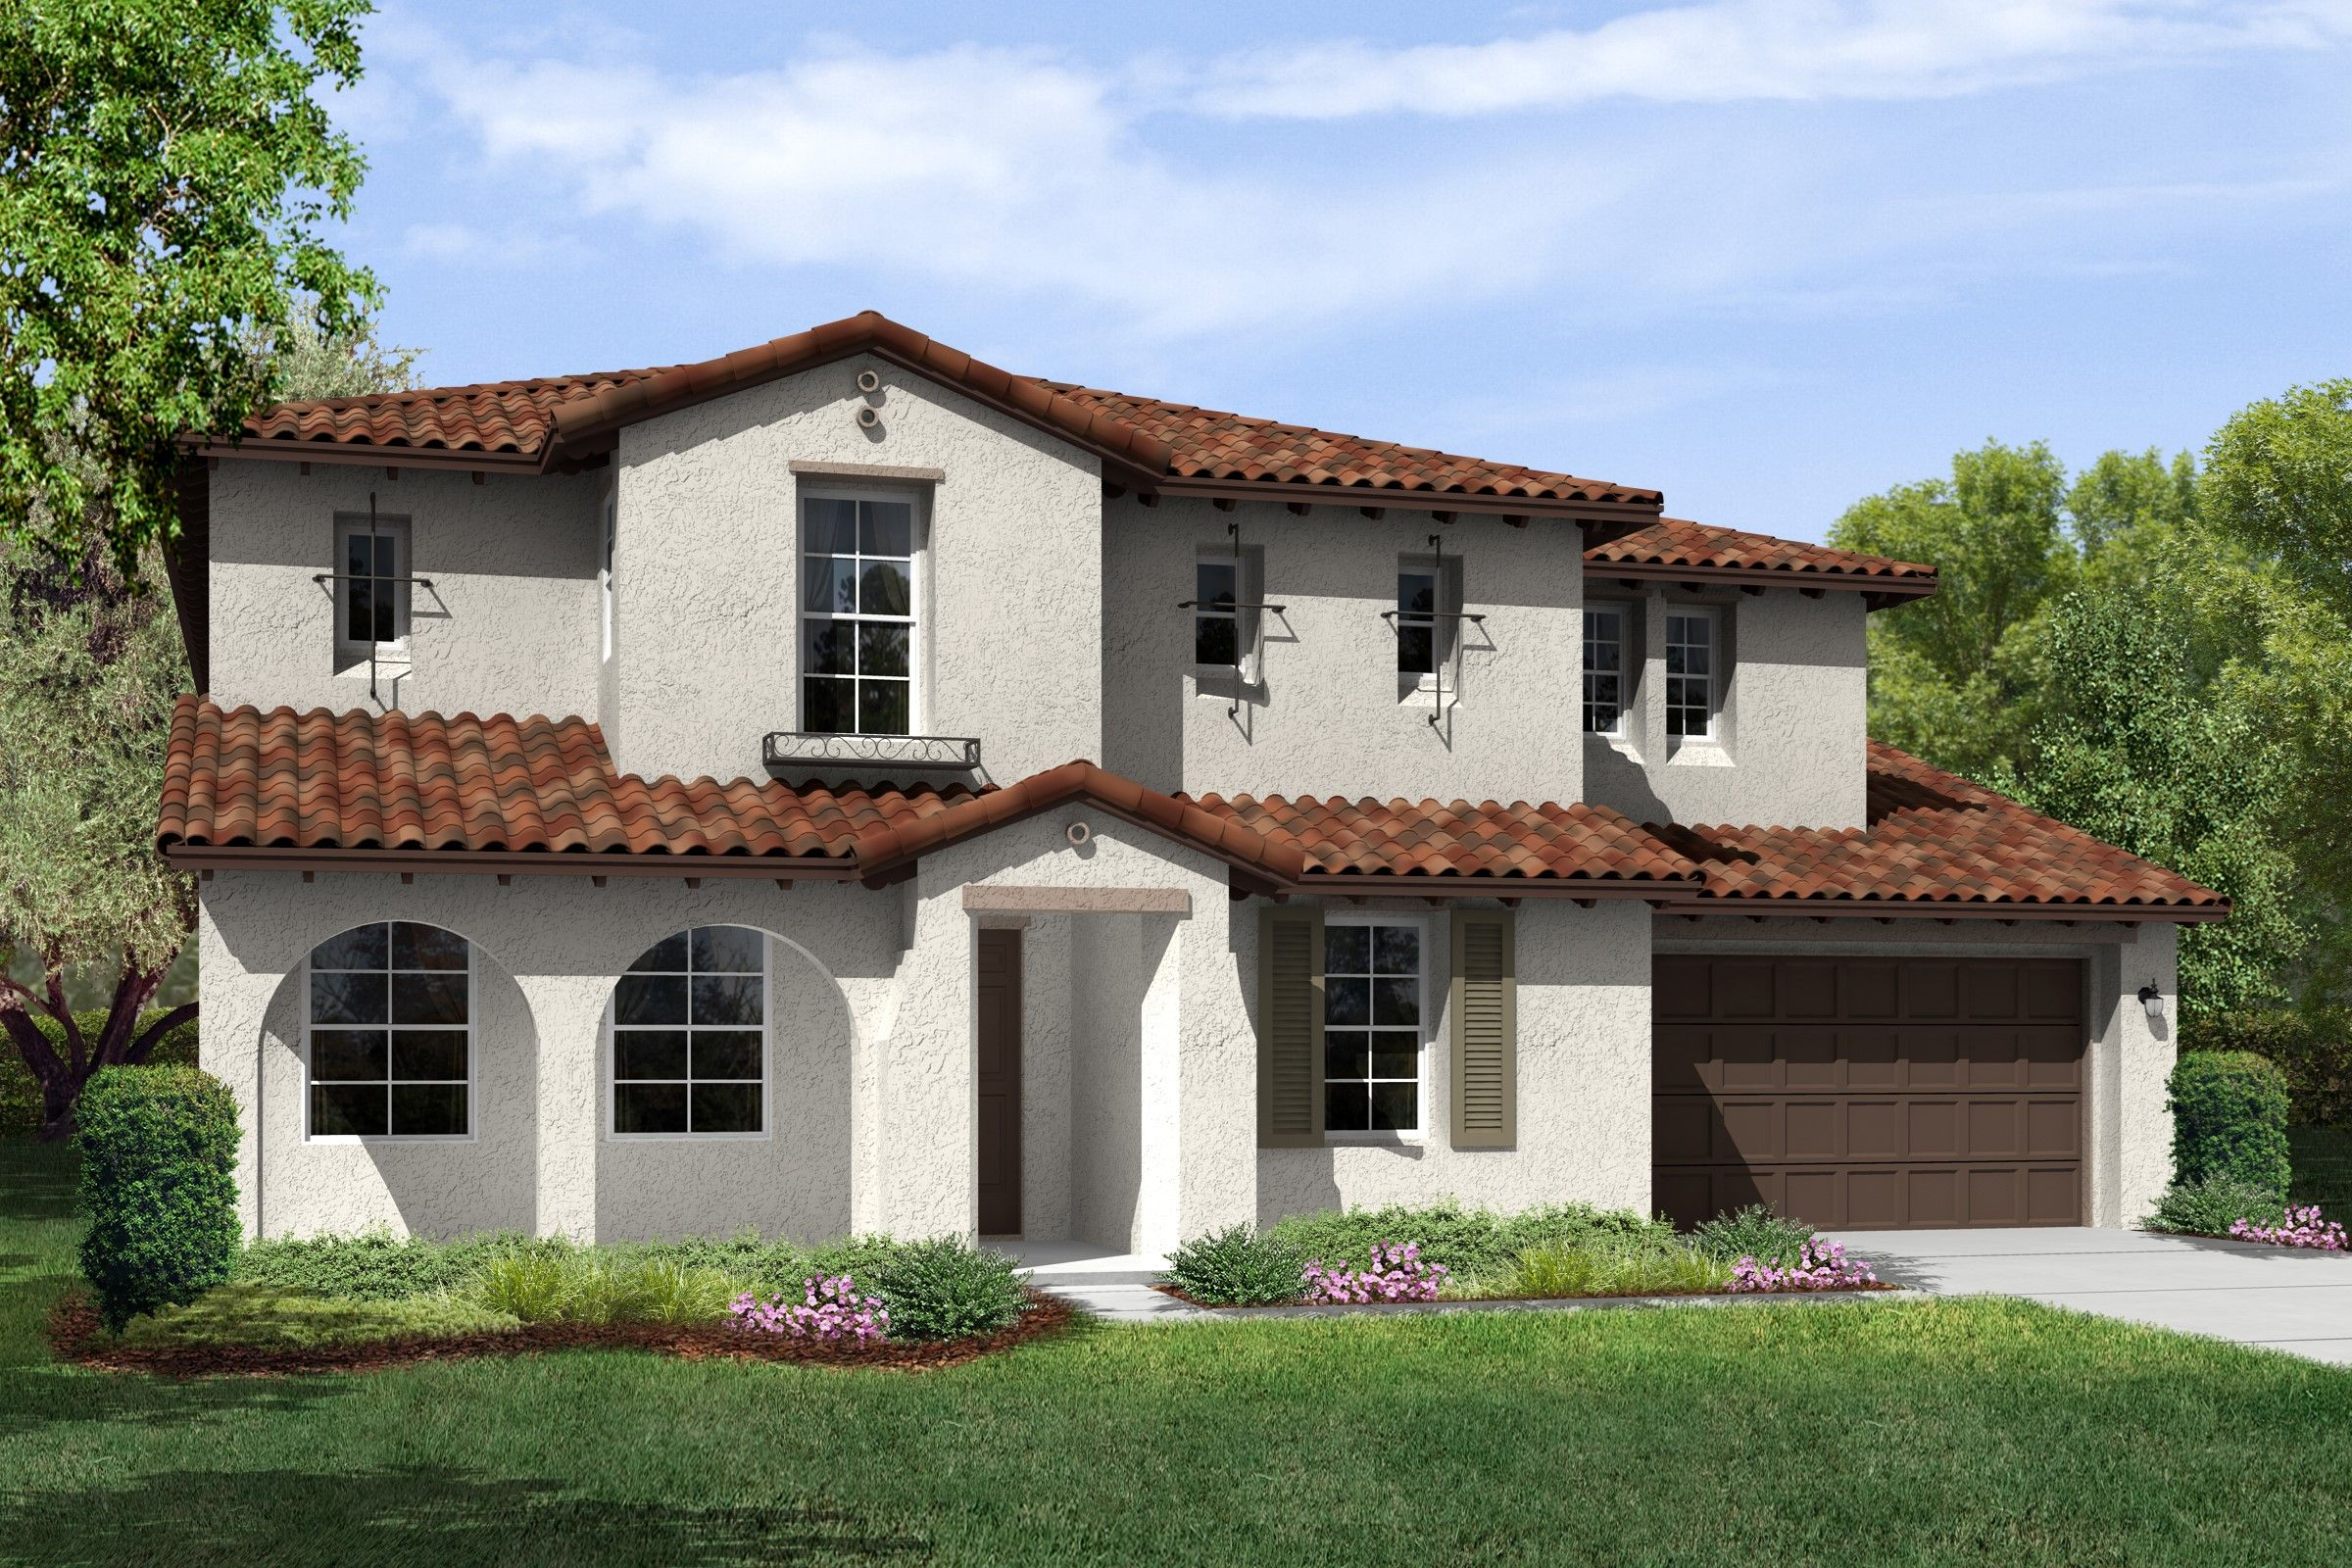 Single Family for Sale at The Executive Collection At Meridian Hills - Ivory 6859 Ridgemark Drive Moorpark, California 93021 United States